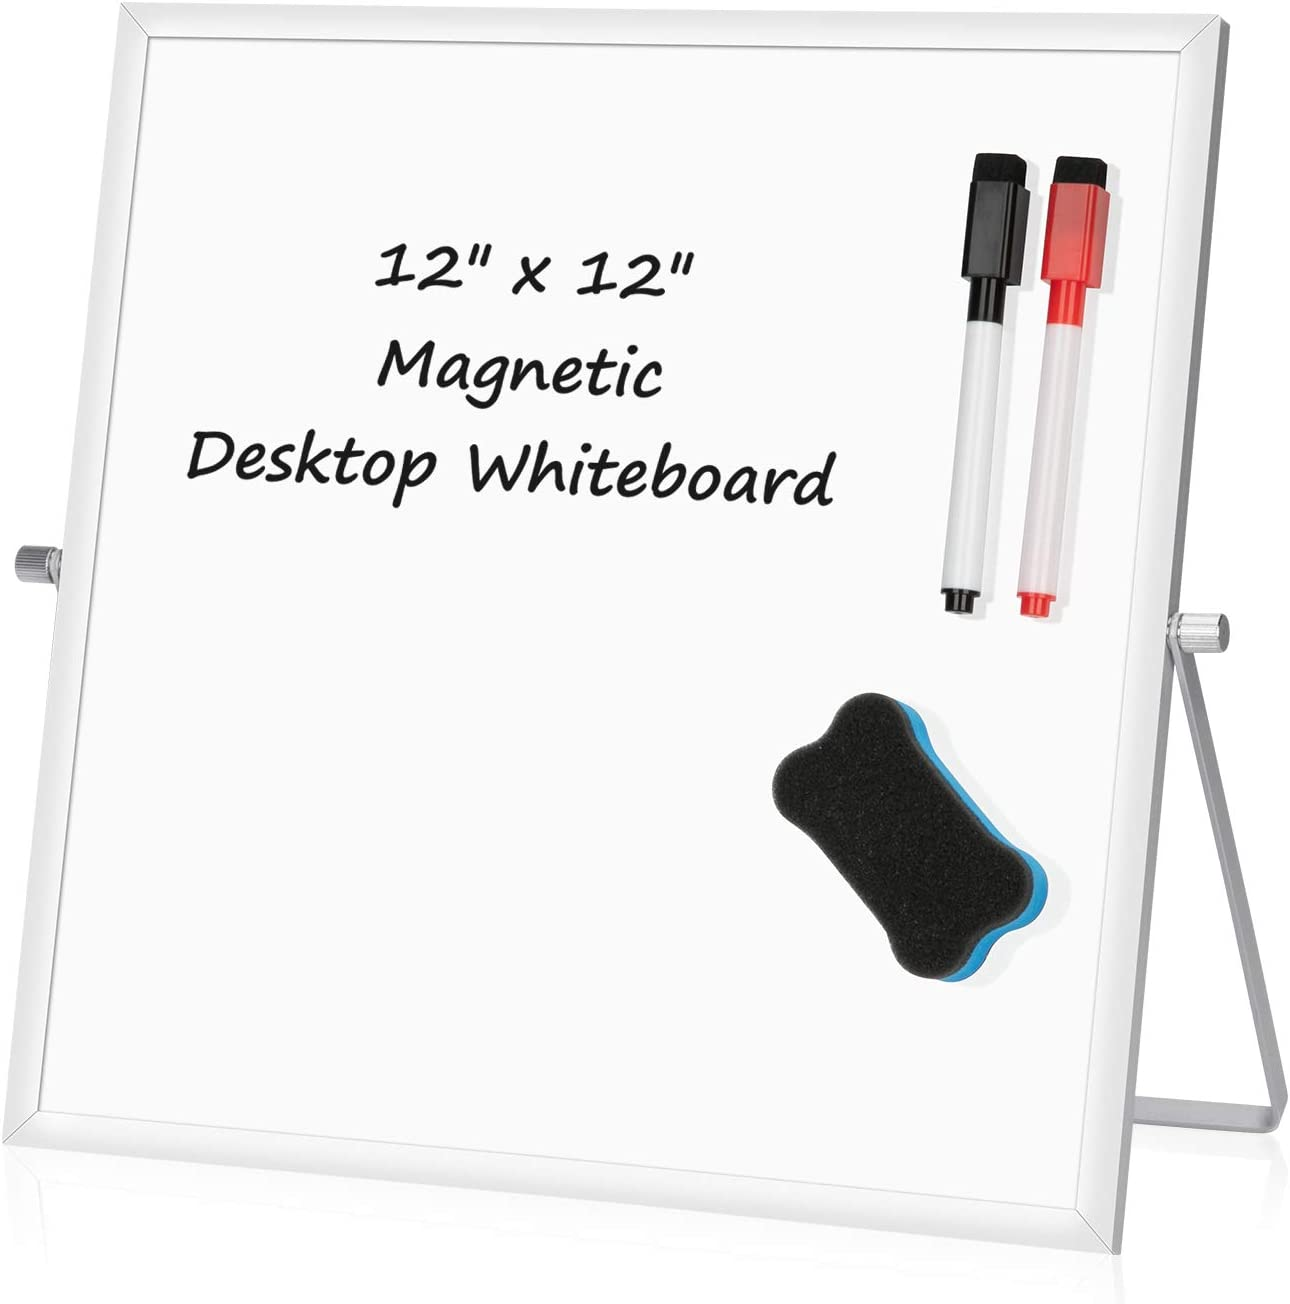 "Small Desktop White Board – 12"" x 12"" Portable Mini Dry Erase Whiteboard for Students Double Side to Do List Dry Erase Board with Stand for Office, School, Home"